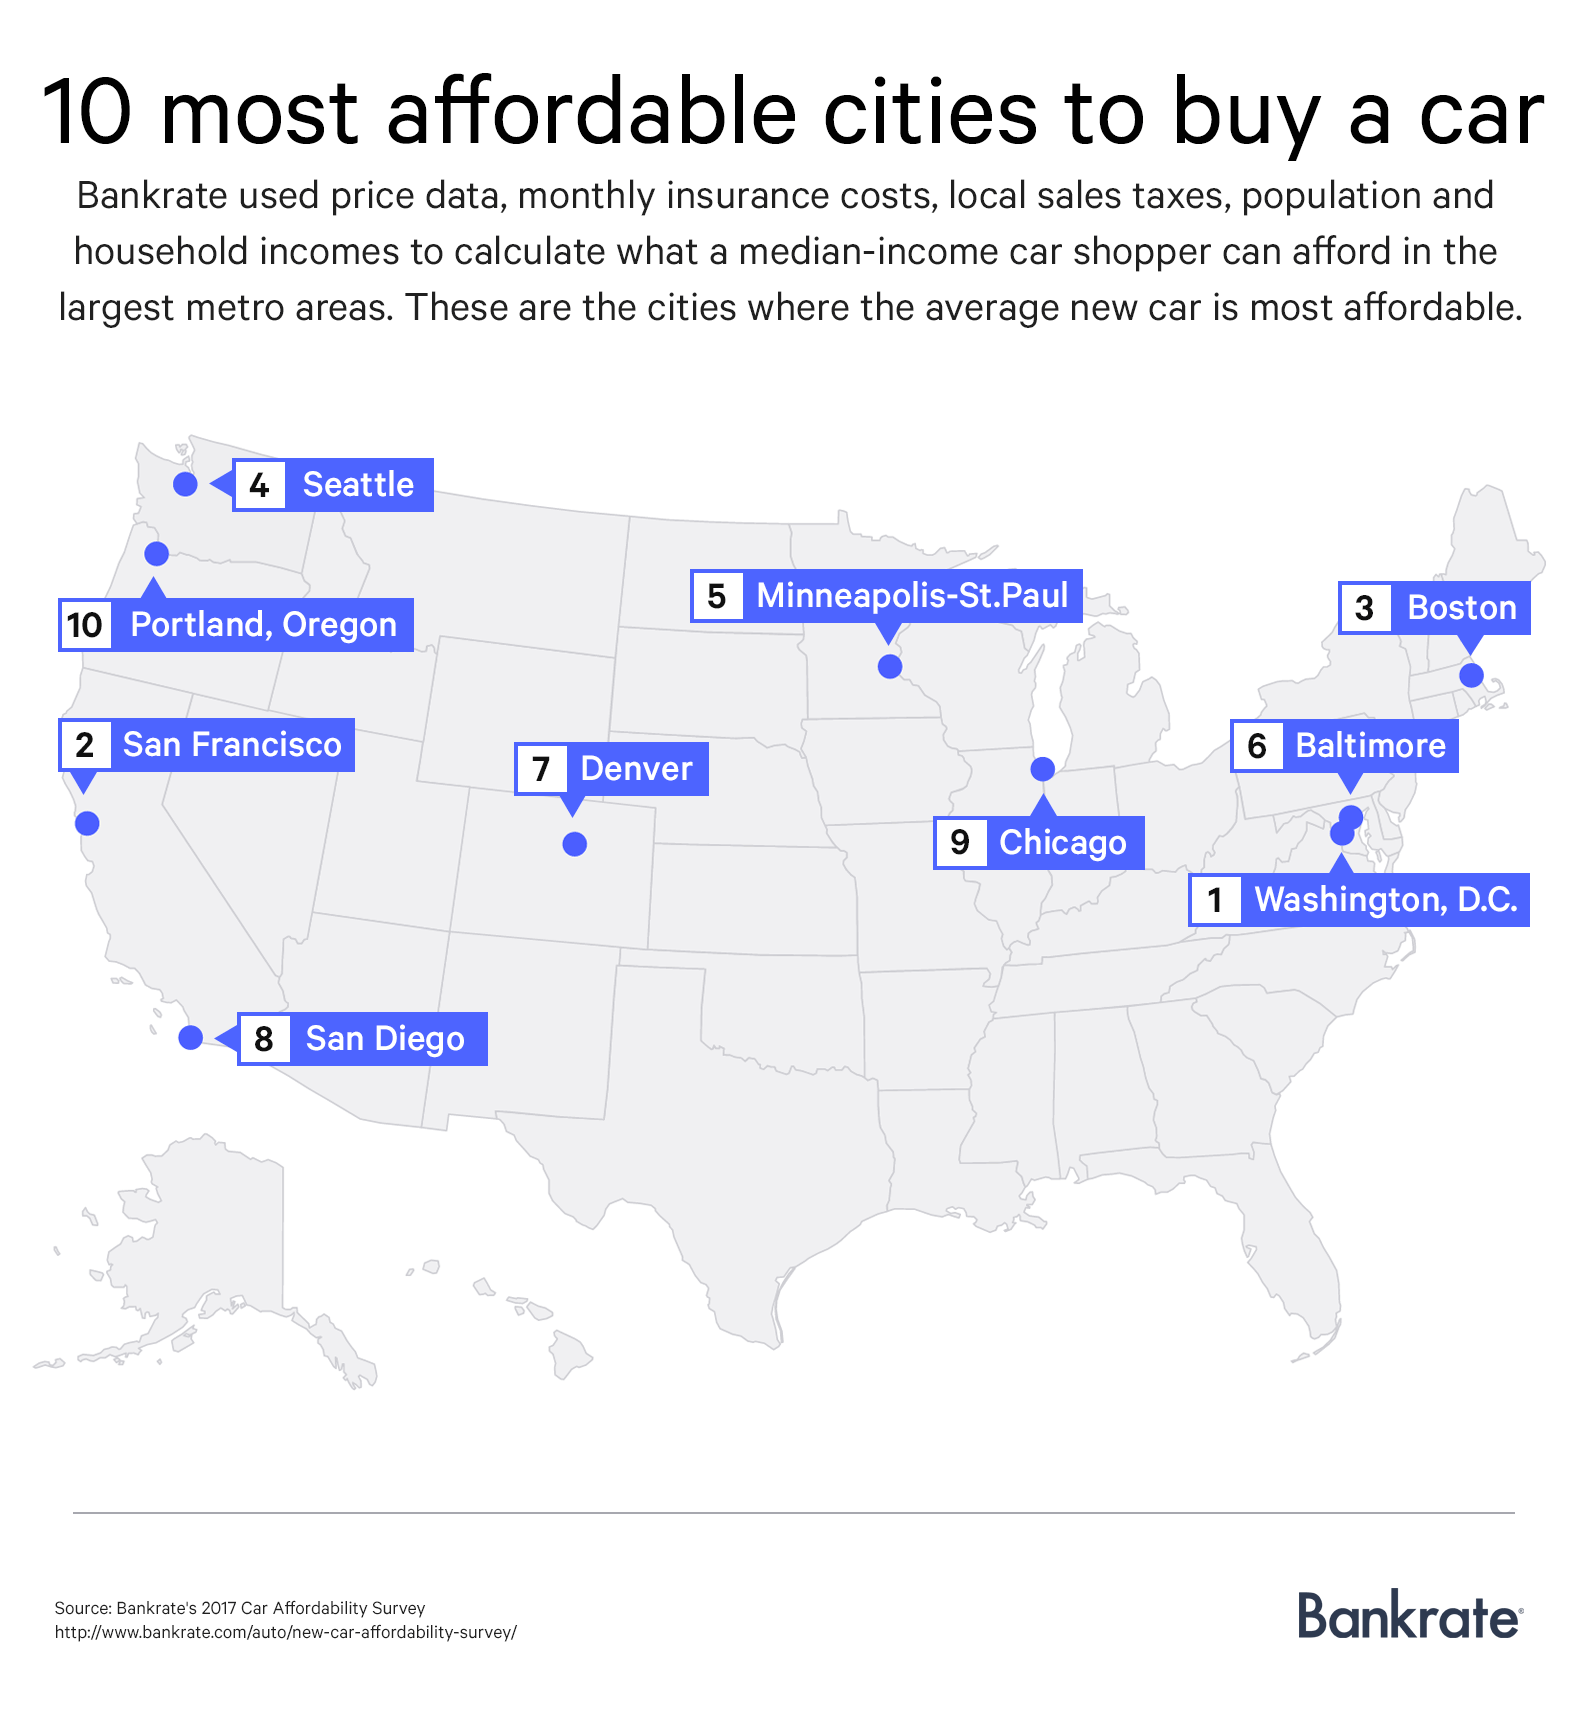 10 most affordable cities to buy a car